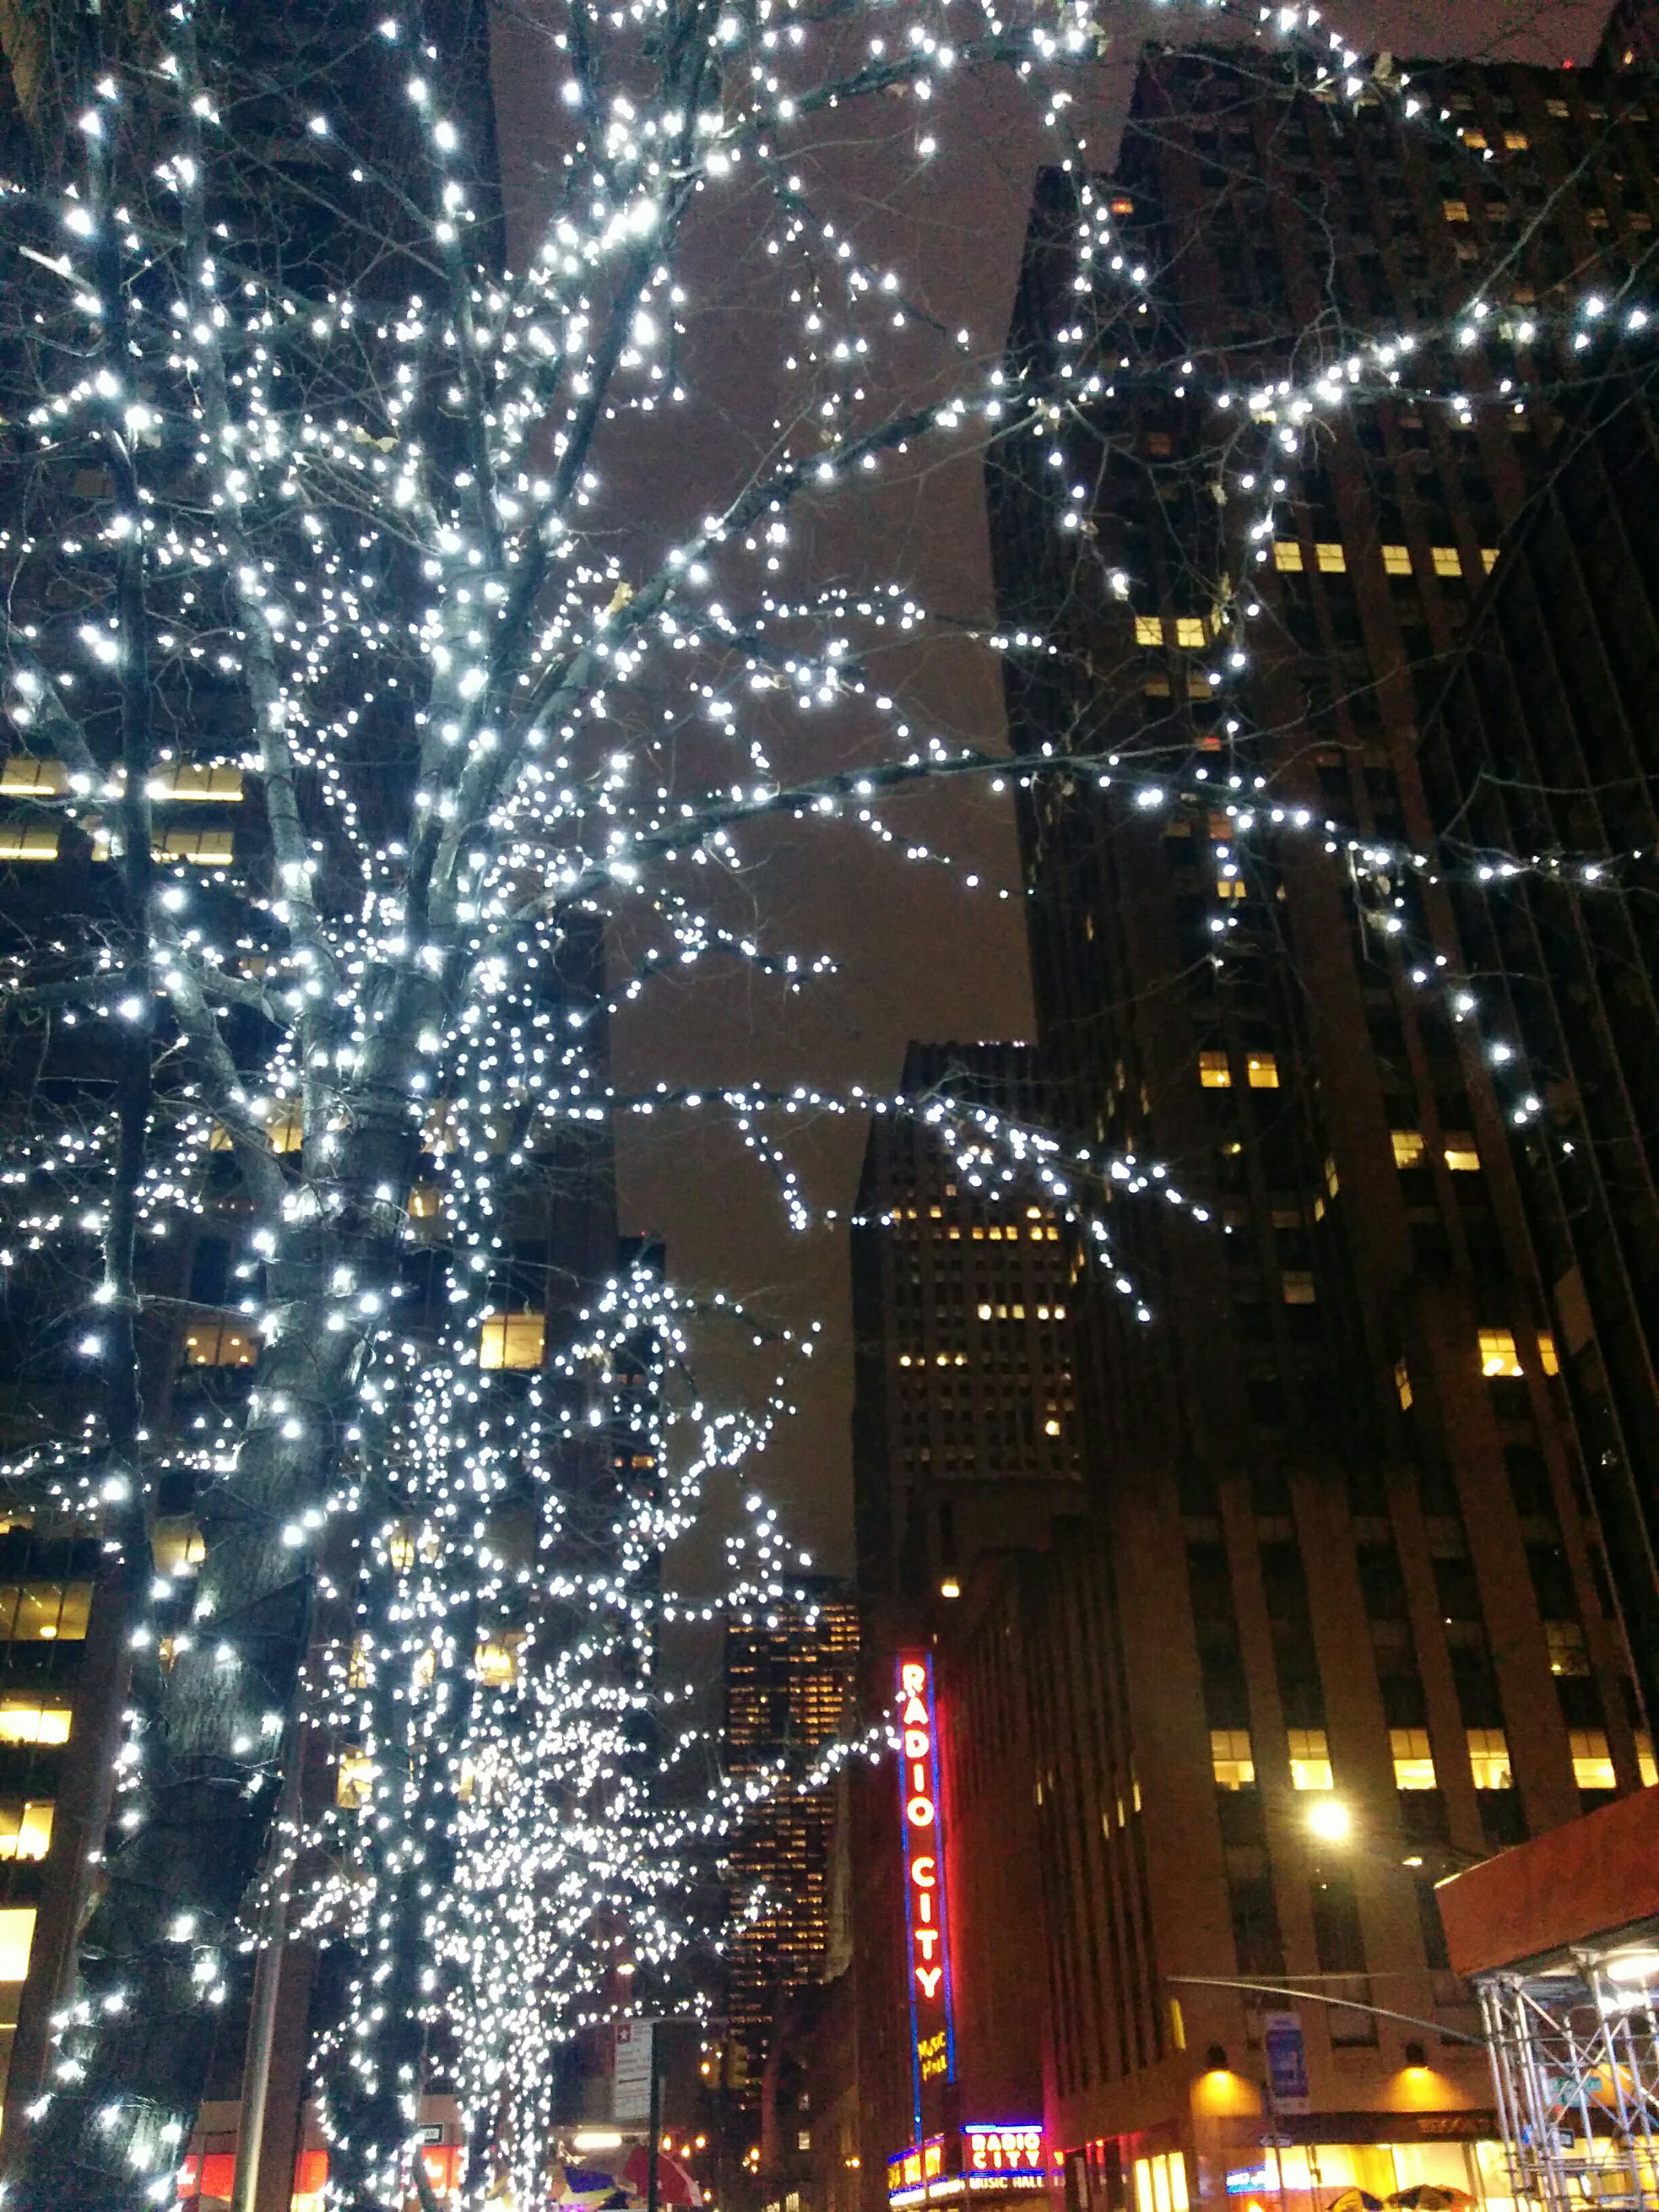 Lights on Tree by Radio City Music Hall